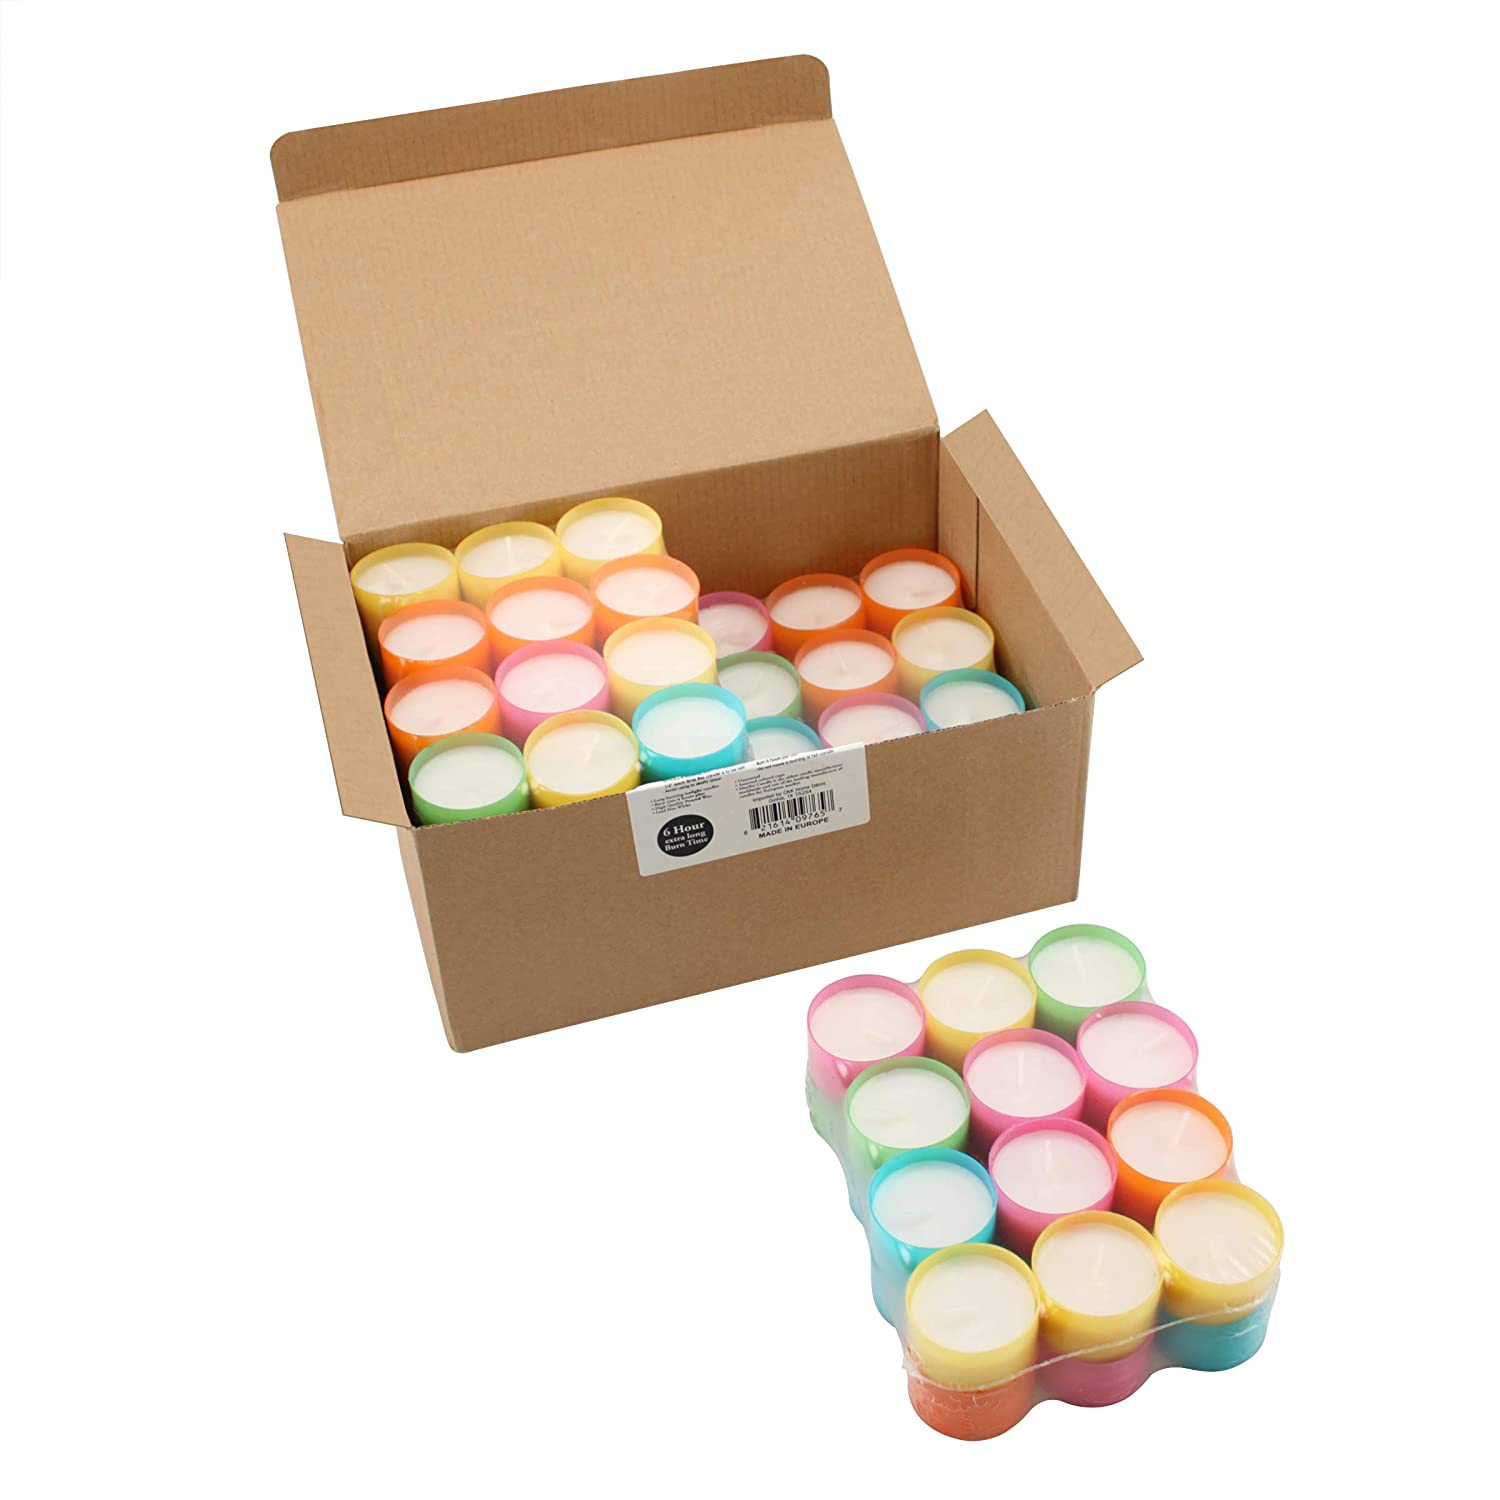 Stonebriar Multicolor Tea Light Candles, 6 to 7 Hr Extended Burn Time, 96 Pack